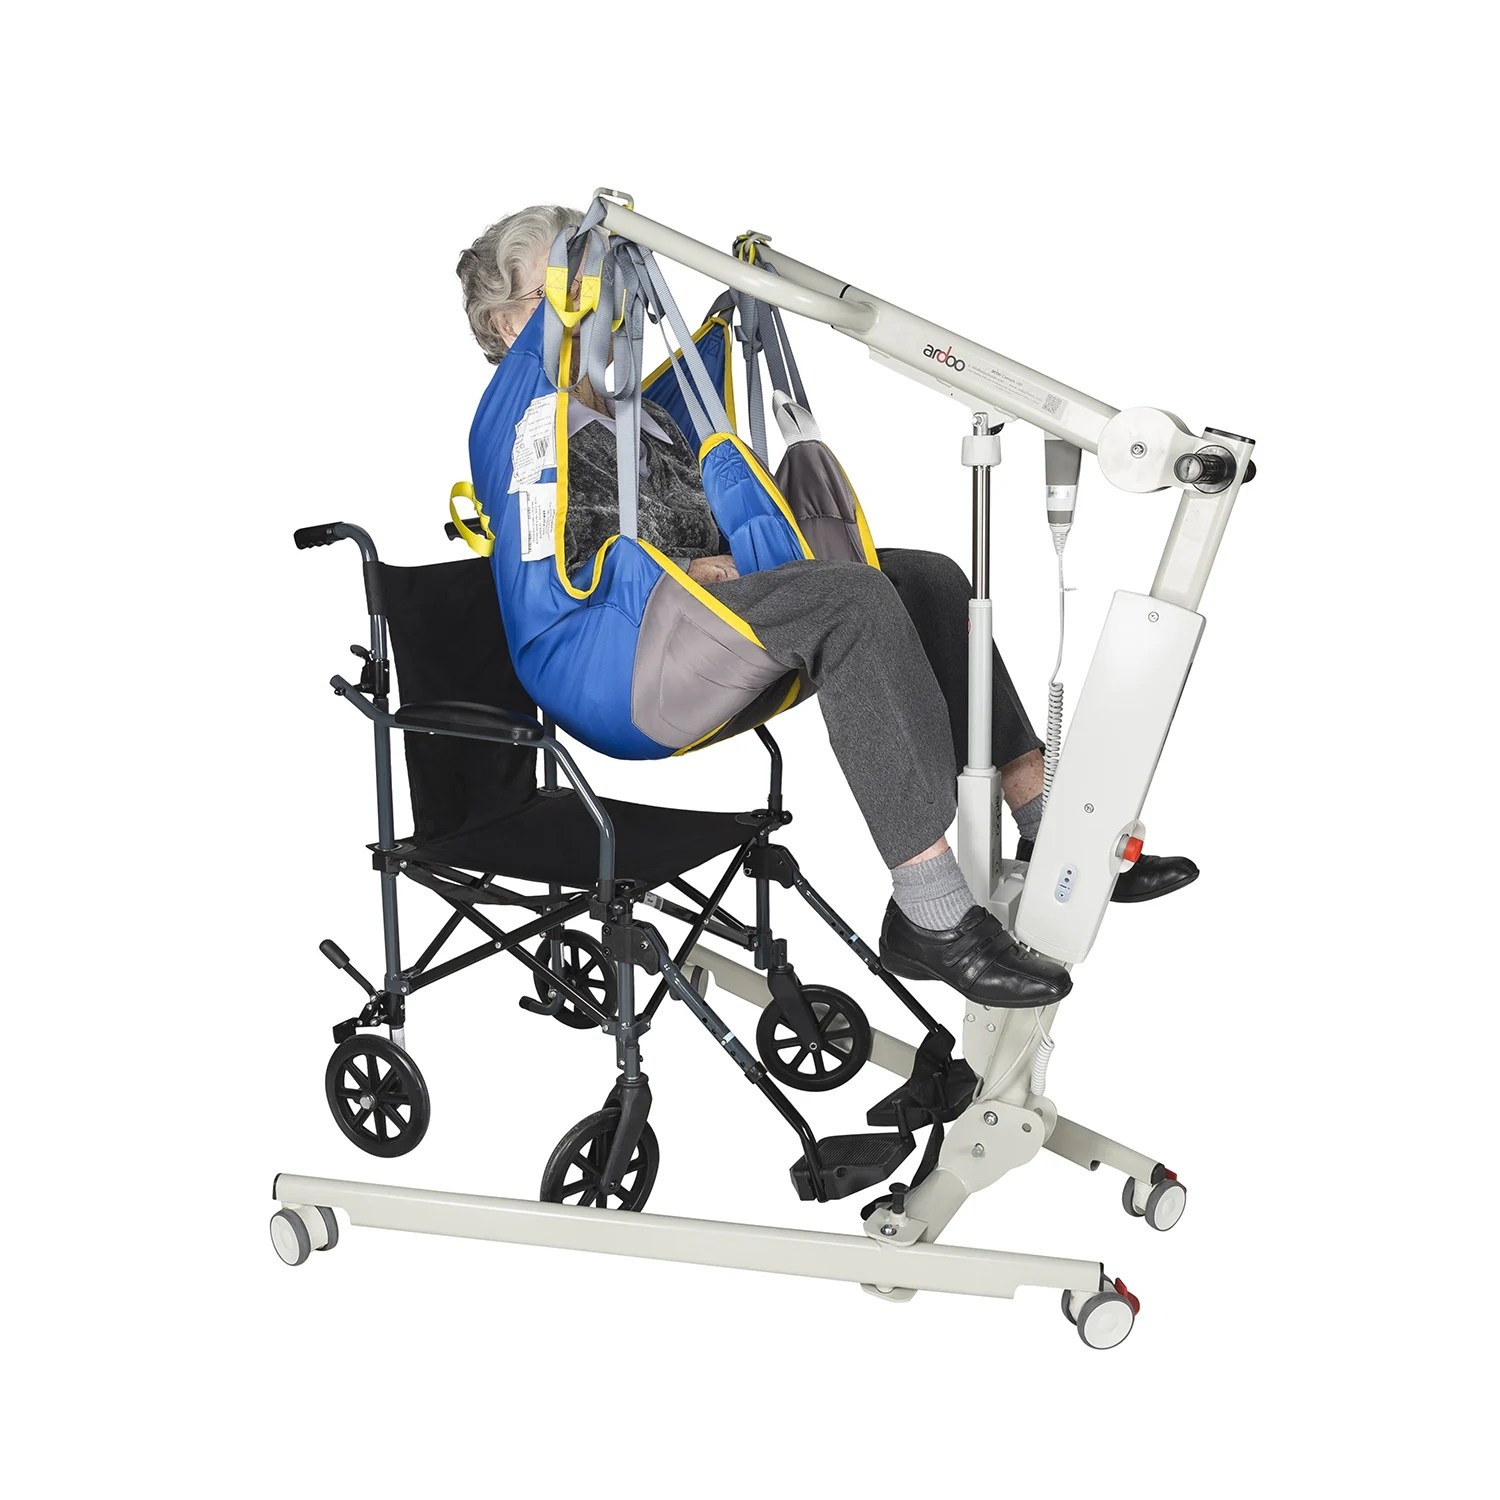 Commodes Solver Ardoo 140 Folding Hoist Yorkshire Care Equipment